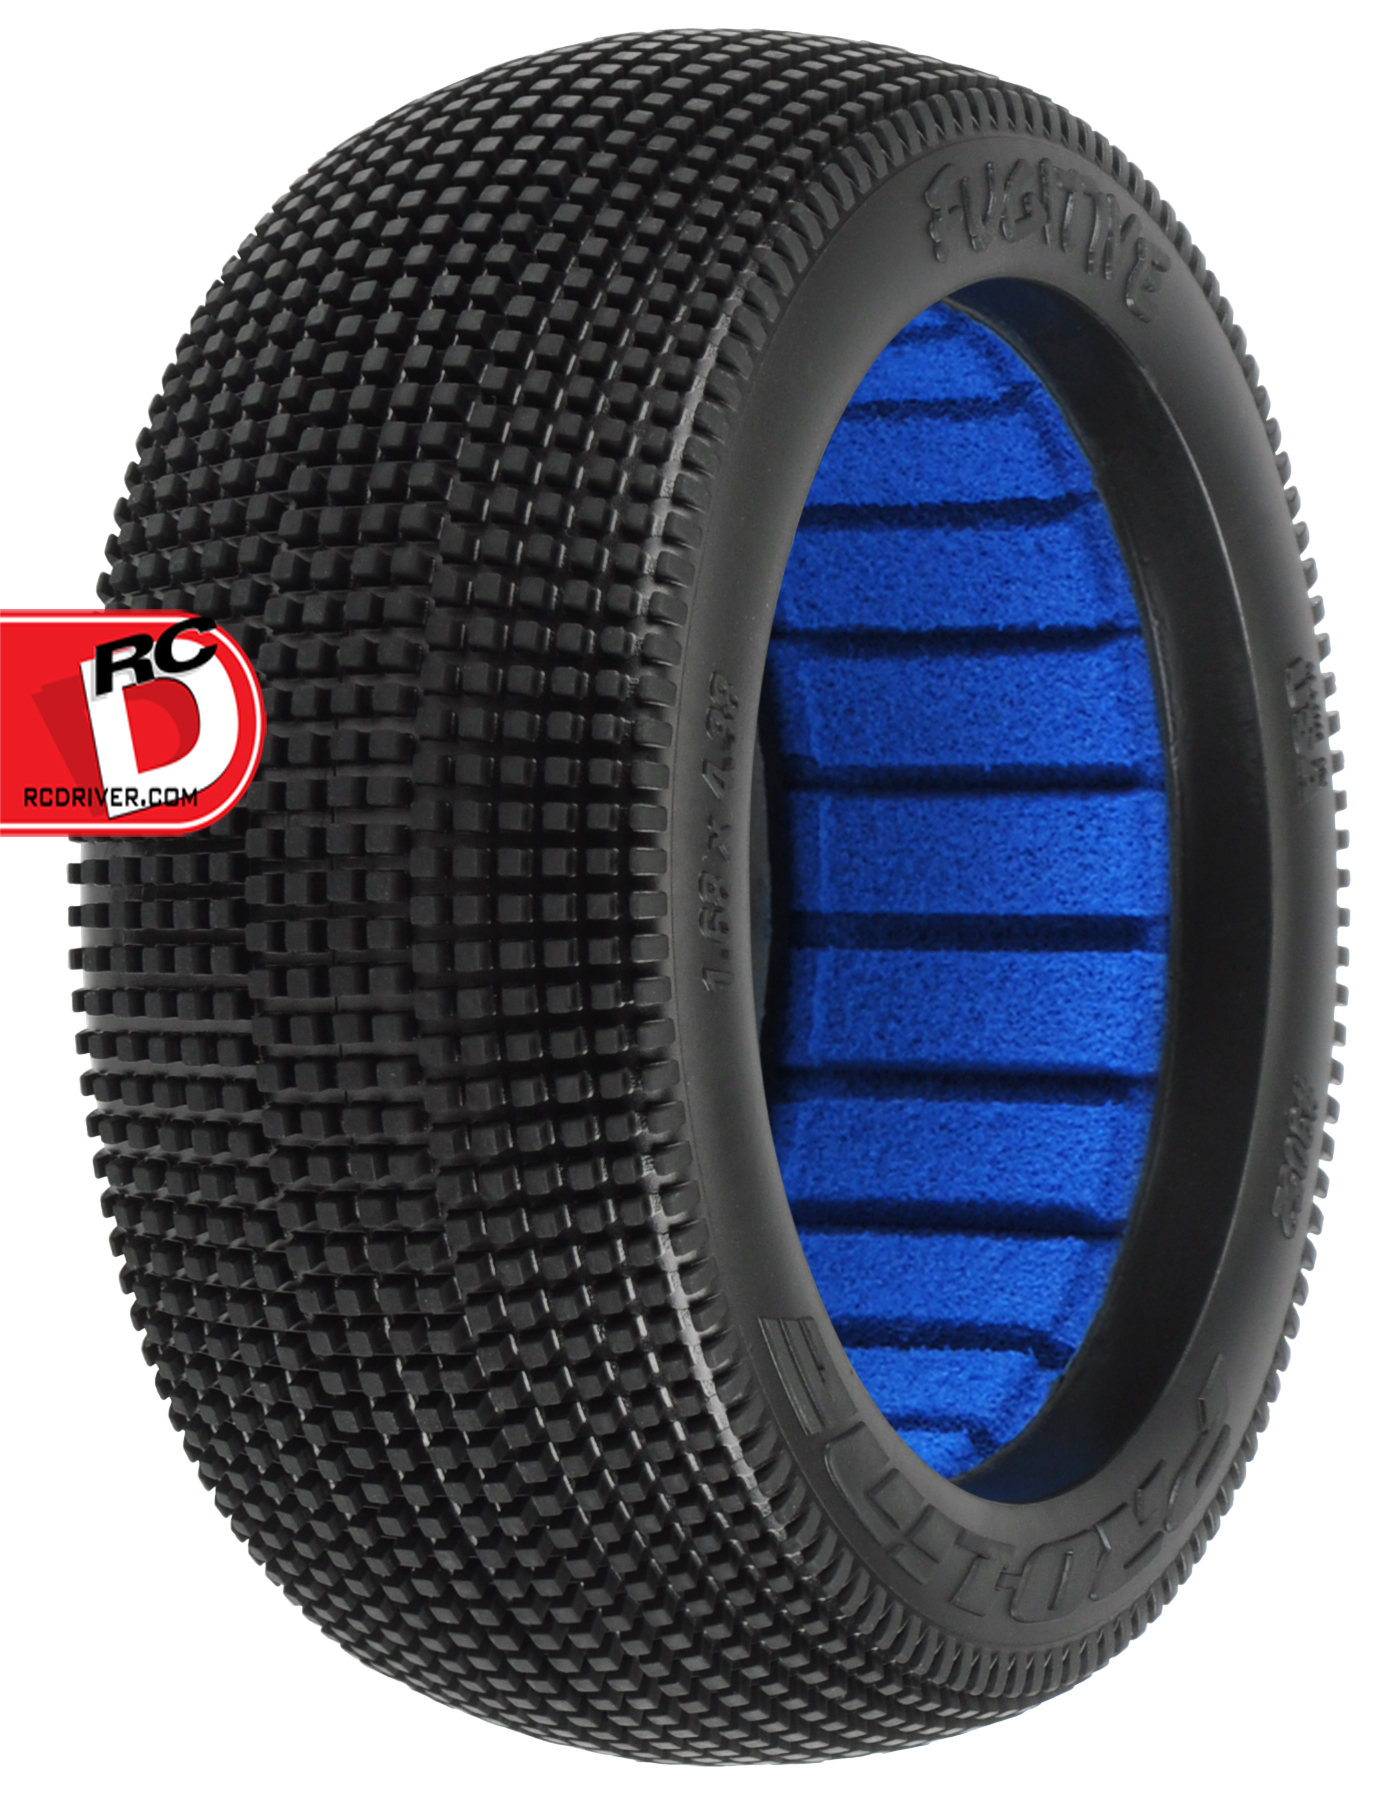 Pro-Line Fugitive 1:8 Off Road Buggy Tires